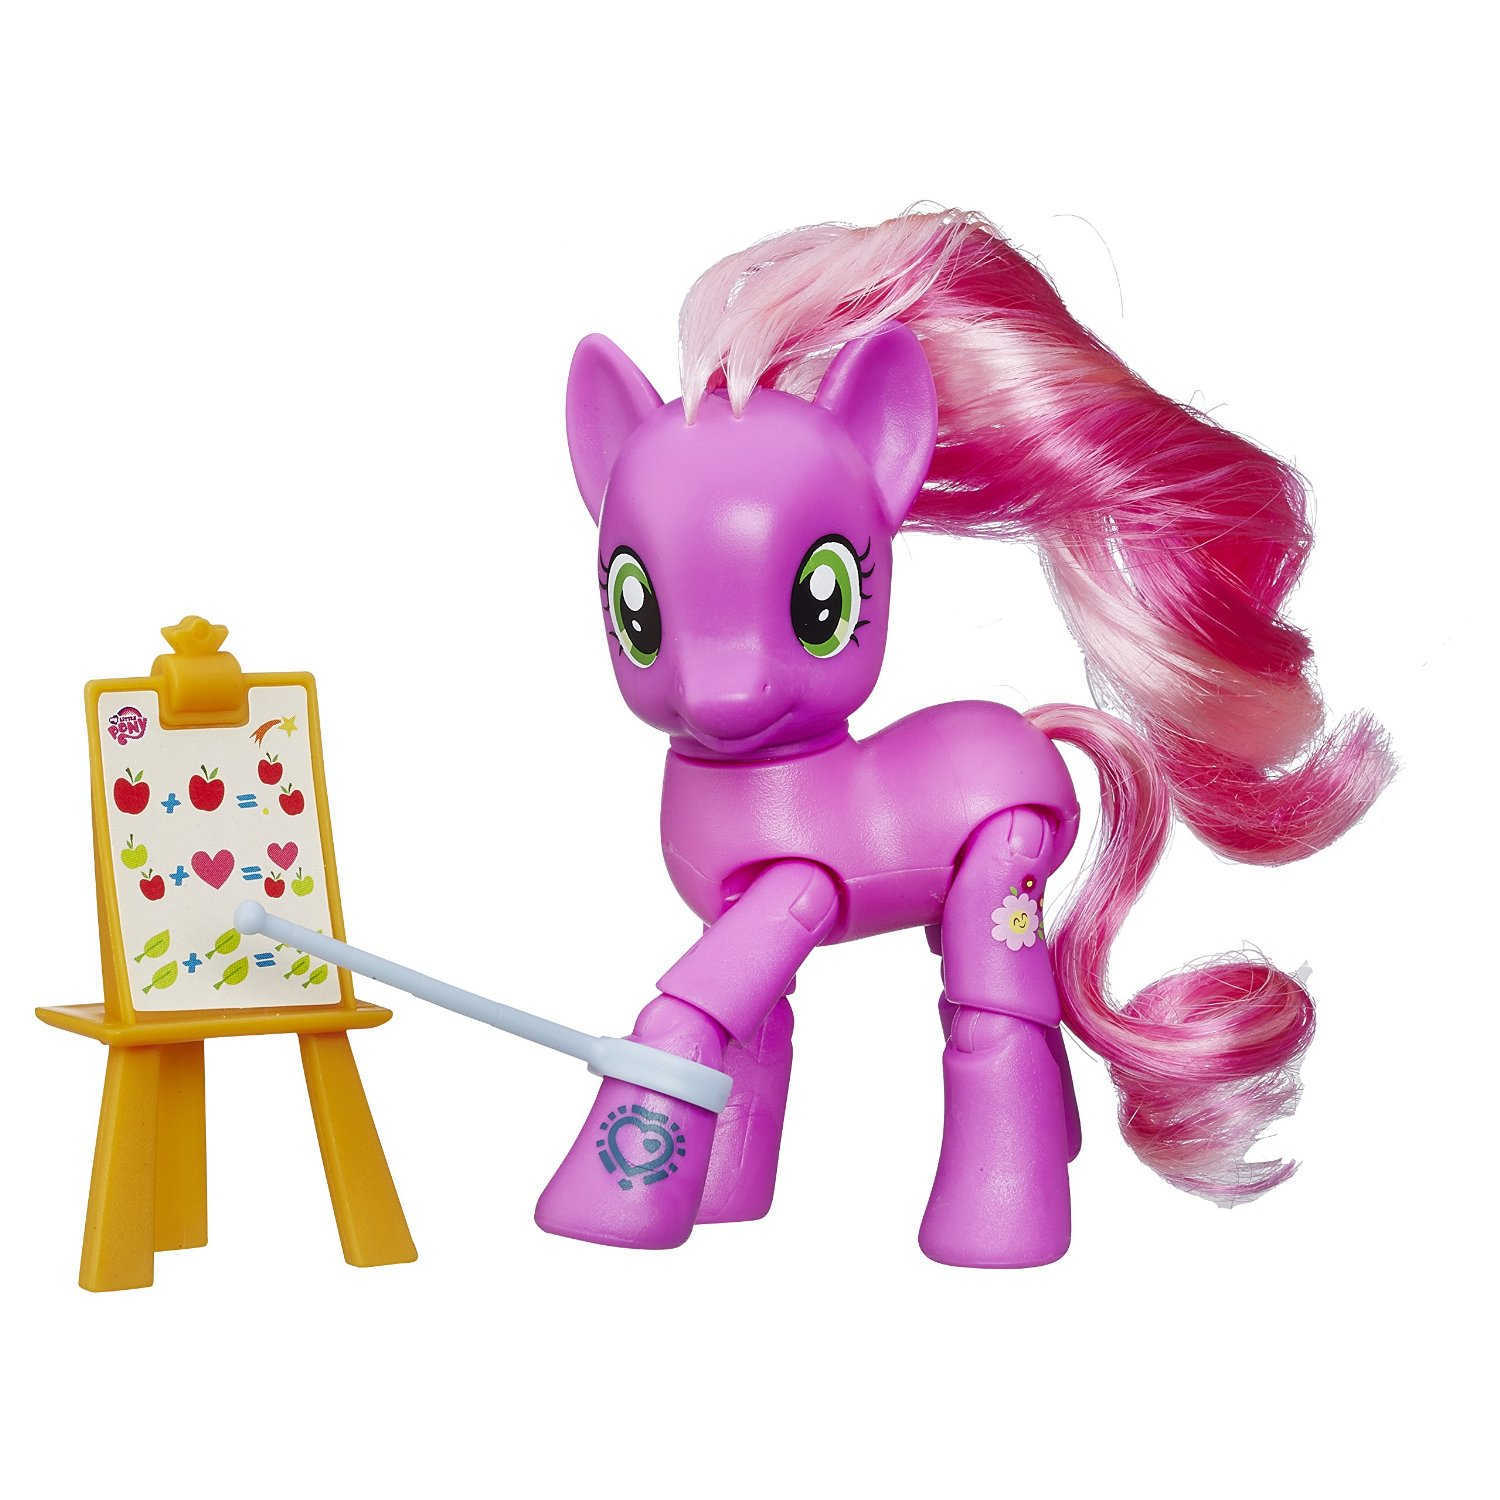 New Poseable Brushables Listed on Amazon | MLP Merch